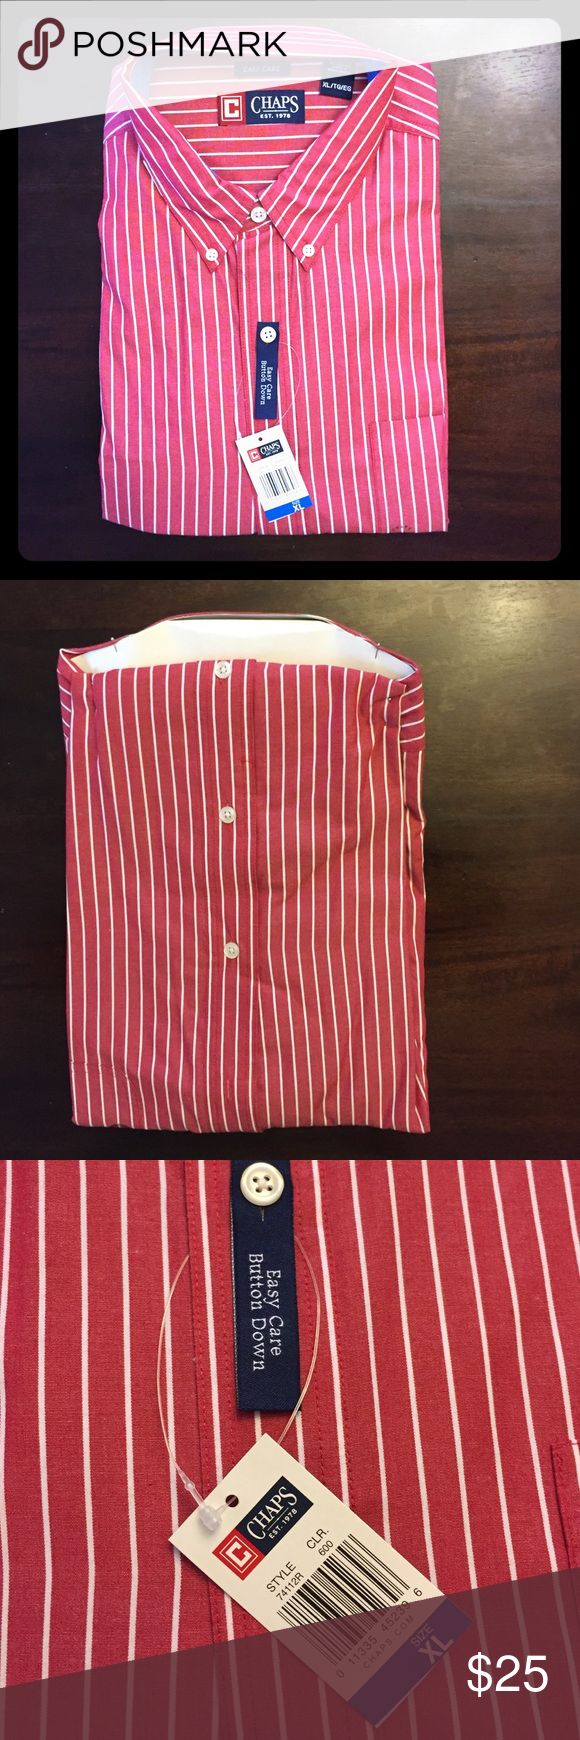 Men's Brand New Button Up Collared Chaps  Shirt Brand new with tags Men's size XL Chaps Button Up collared shirt. Chaps Shirts Dress Shirts